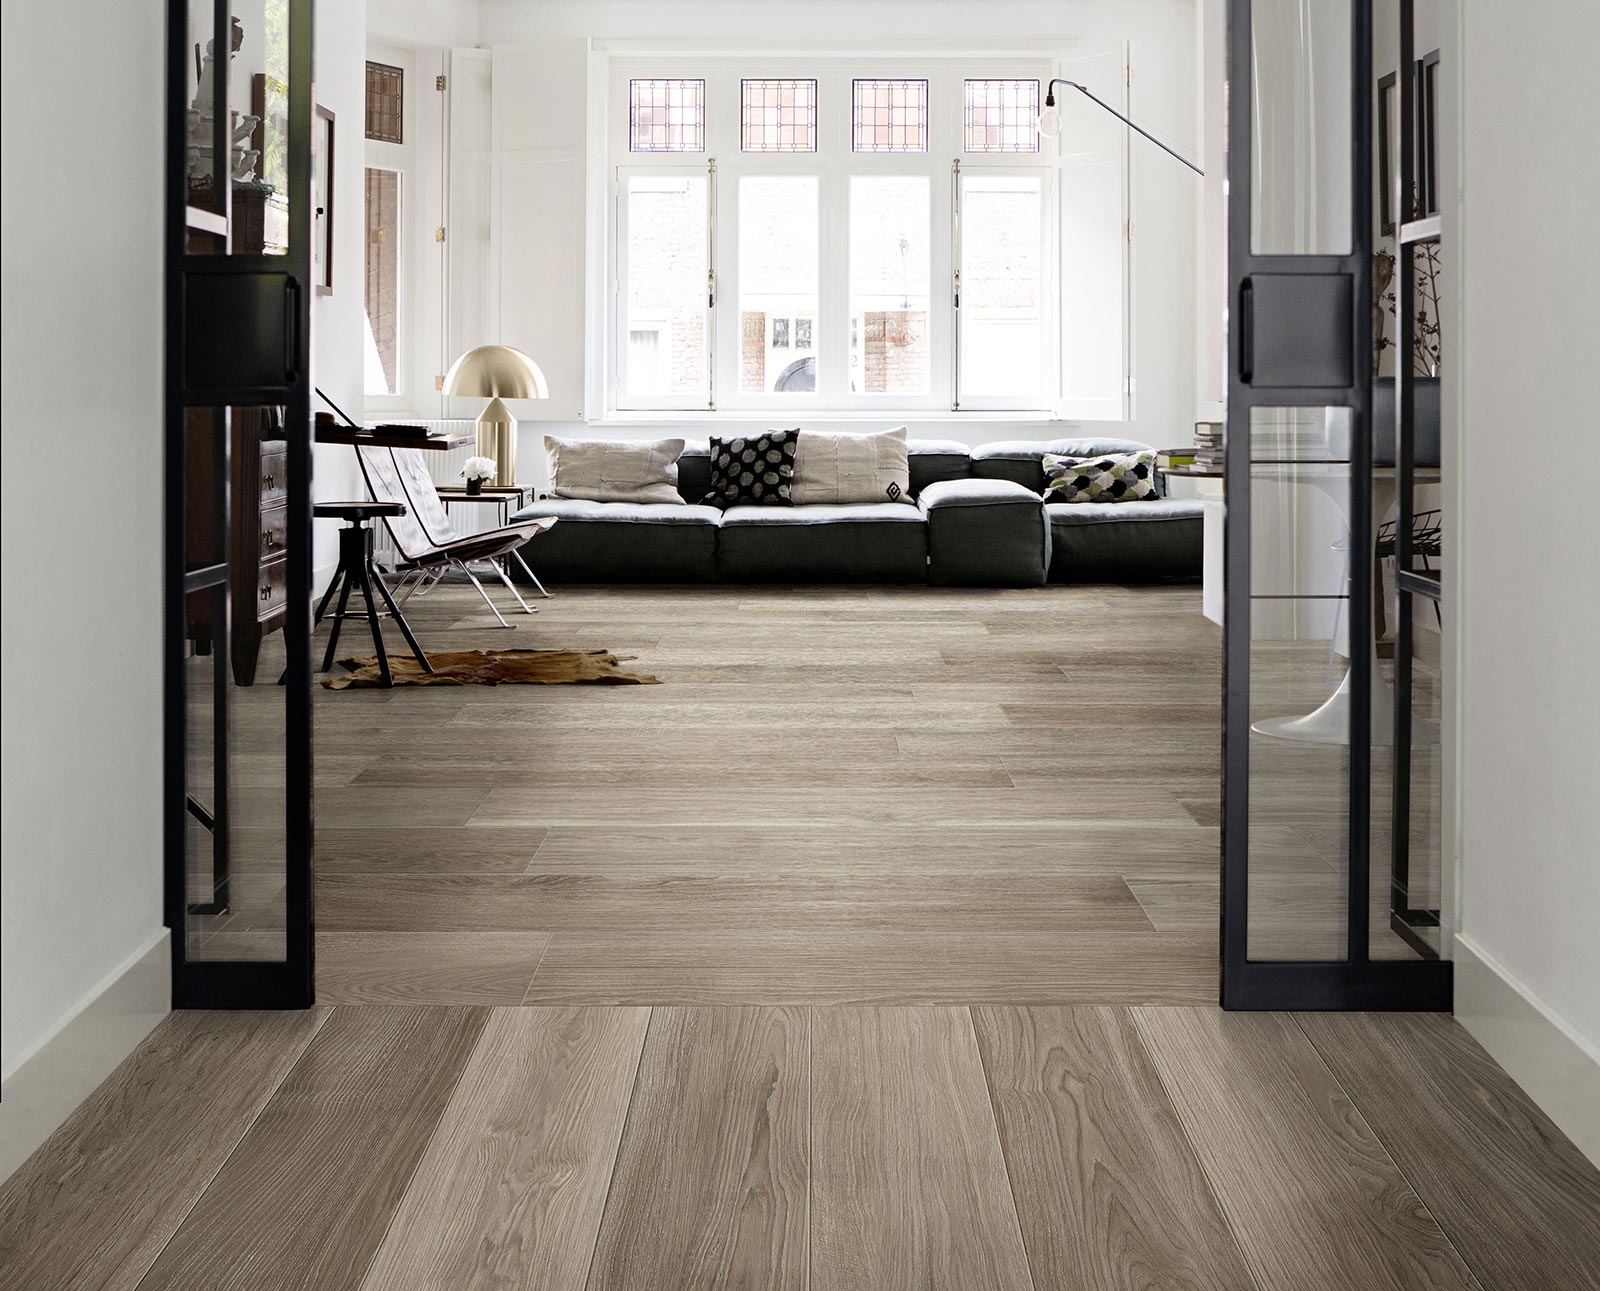 Treverkmust wood effect tiles marazzi for Carrelage ceramique